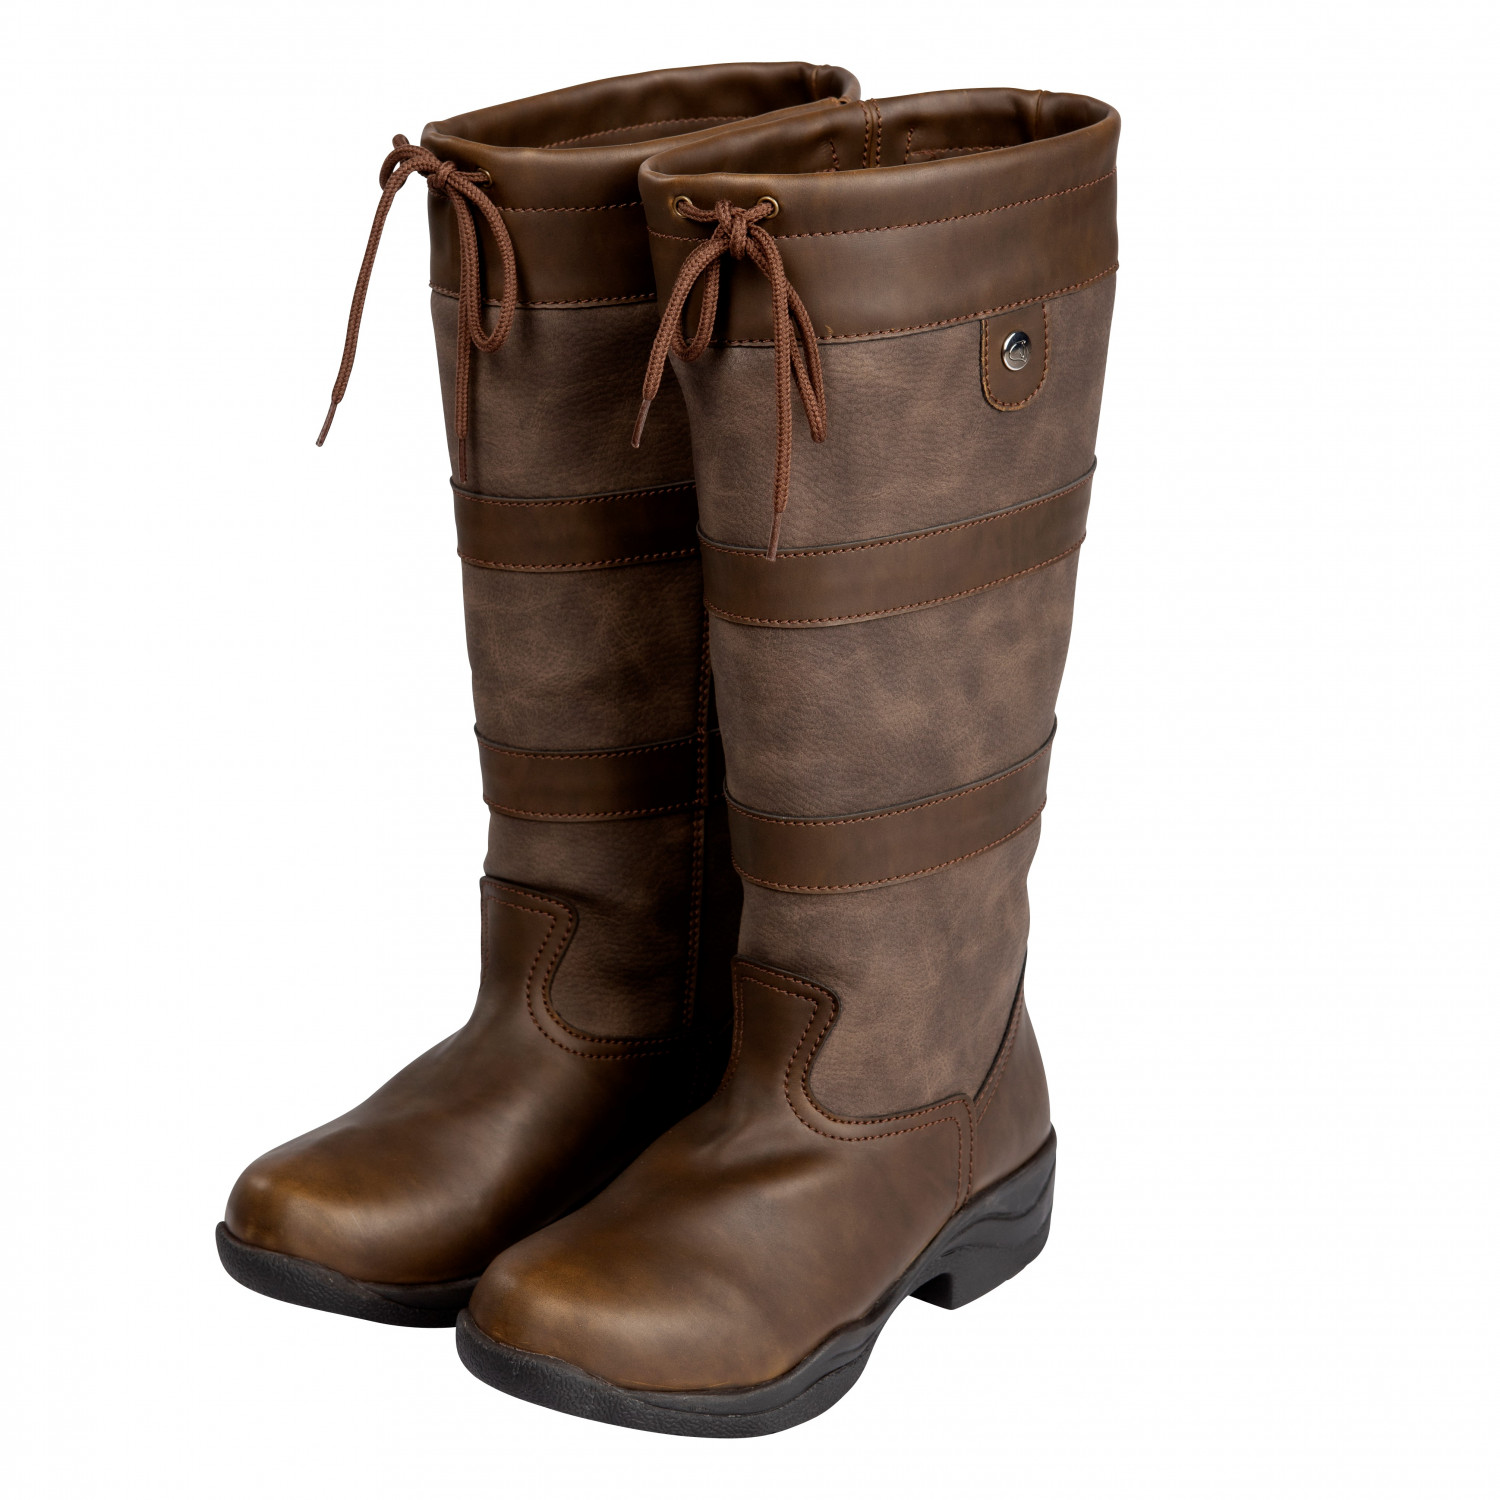 STØVLE COUNTRY BOOTS